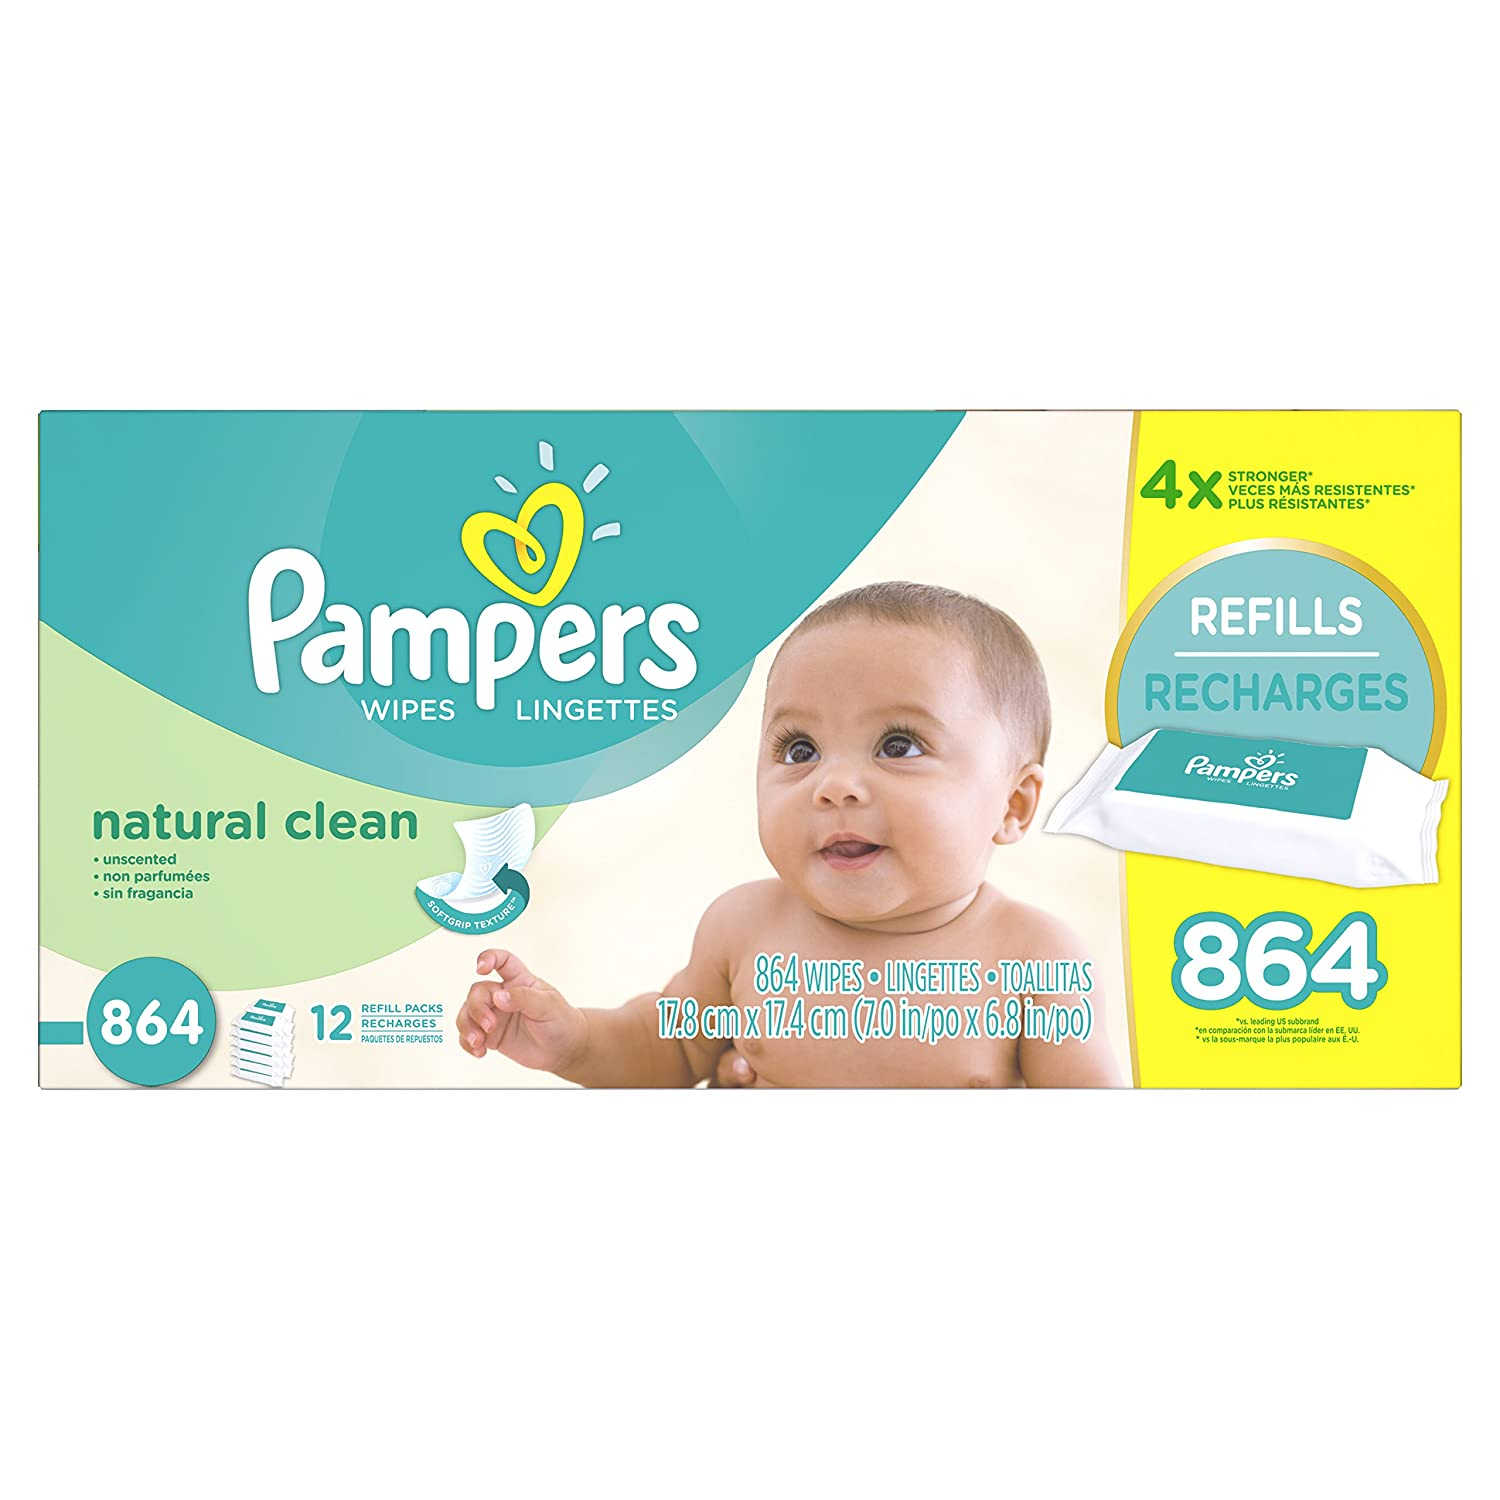 Pampers Baby Wipes 3X Refill Packs Natural Clean UNSCENTED 216 Count